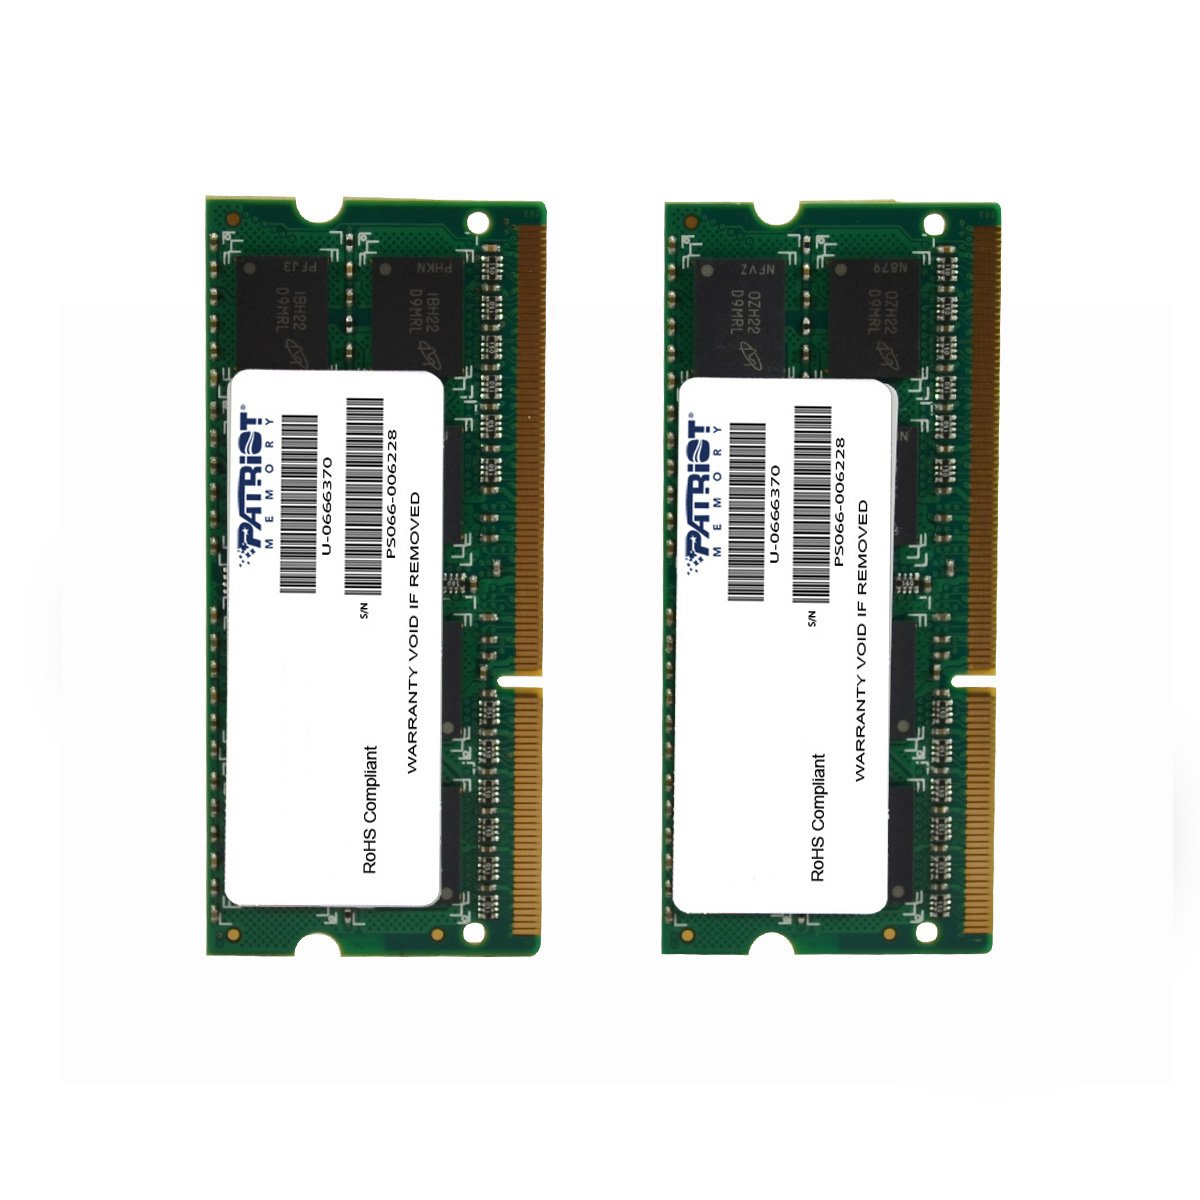 Patriot Mac Series 8GB Apple SODIMM Kit (2X4GB) DDR3 1333 PC3 10600 204-Pin SO-DIMM PSA38G1333SK